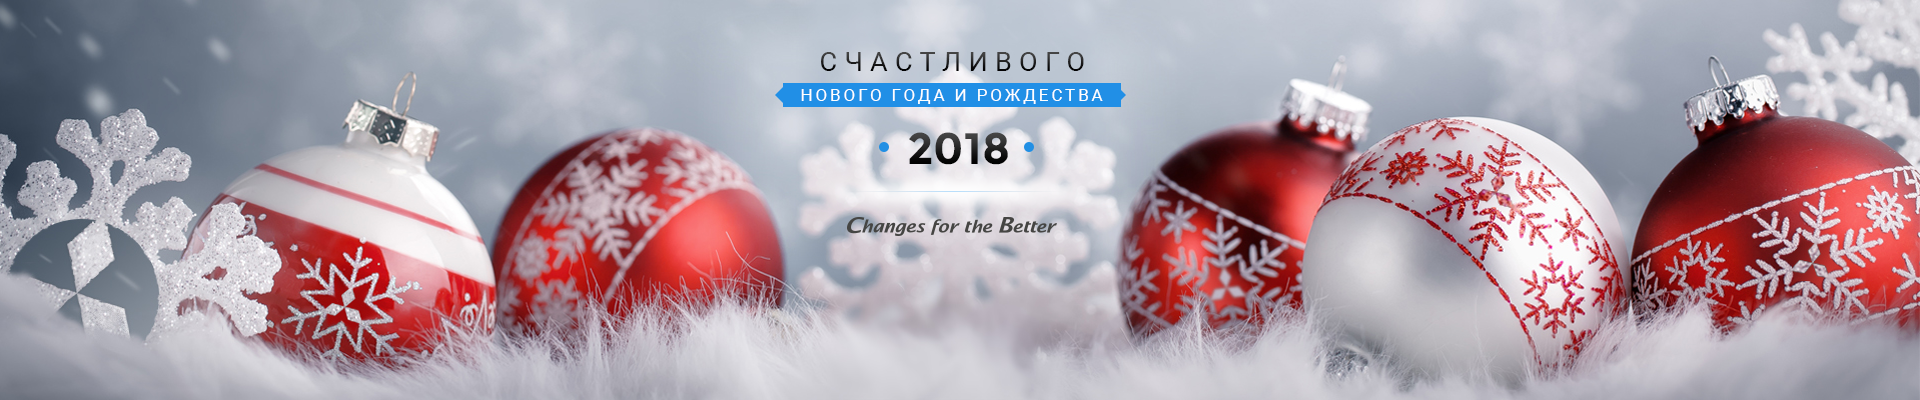 baner_newyear_2018.png